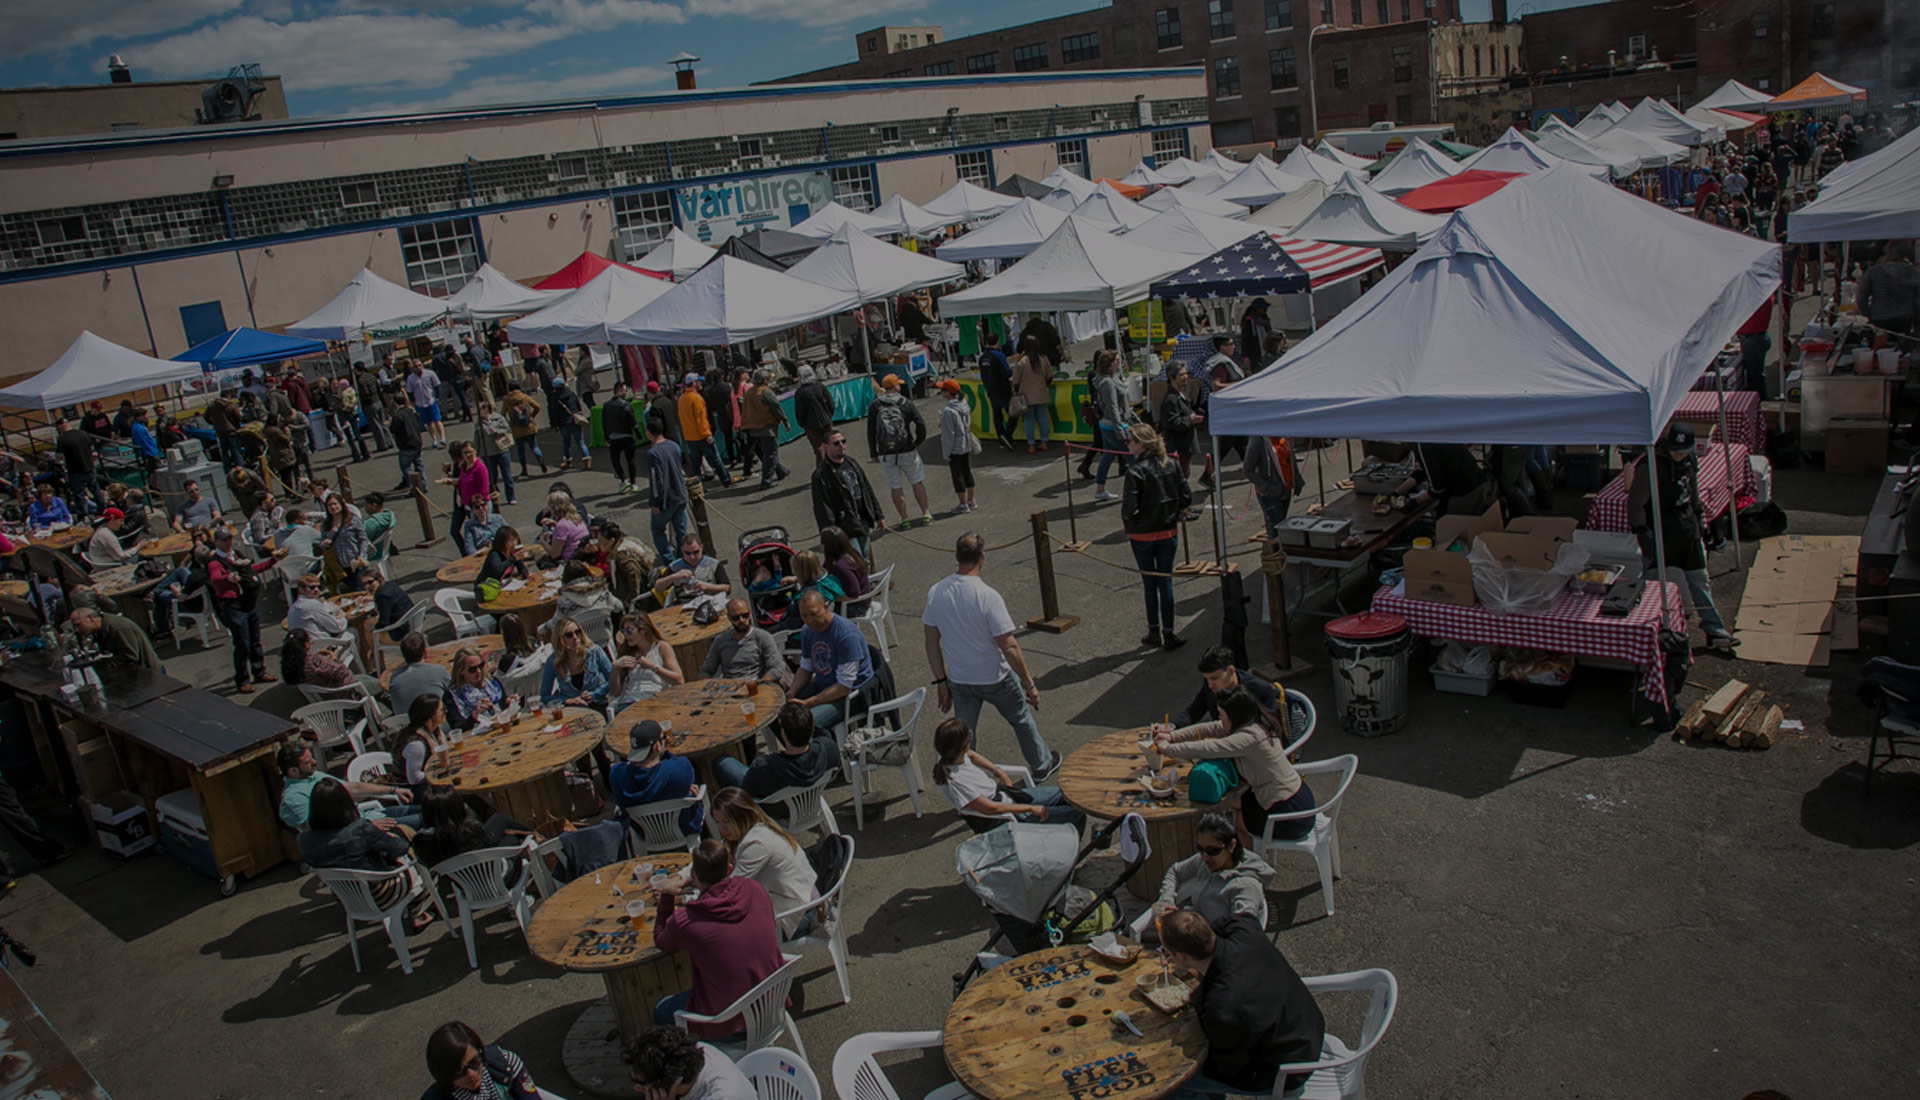 LIC Flea & Food is closed for the Season